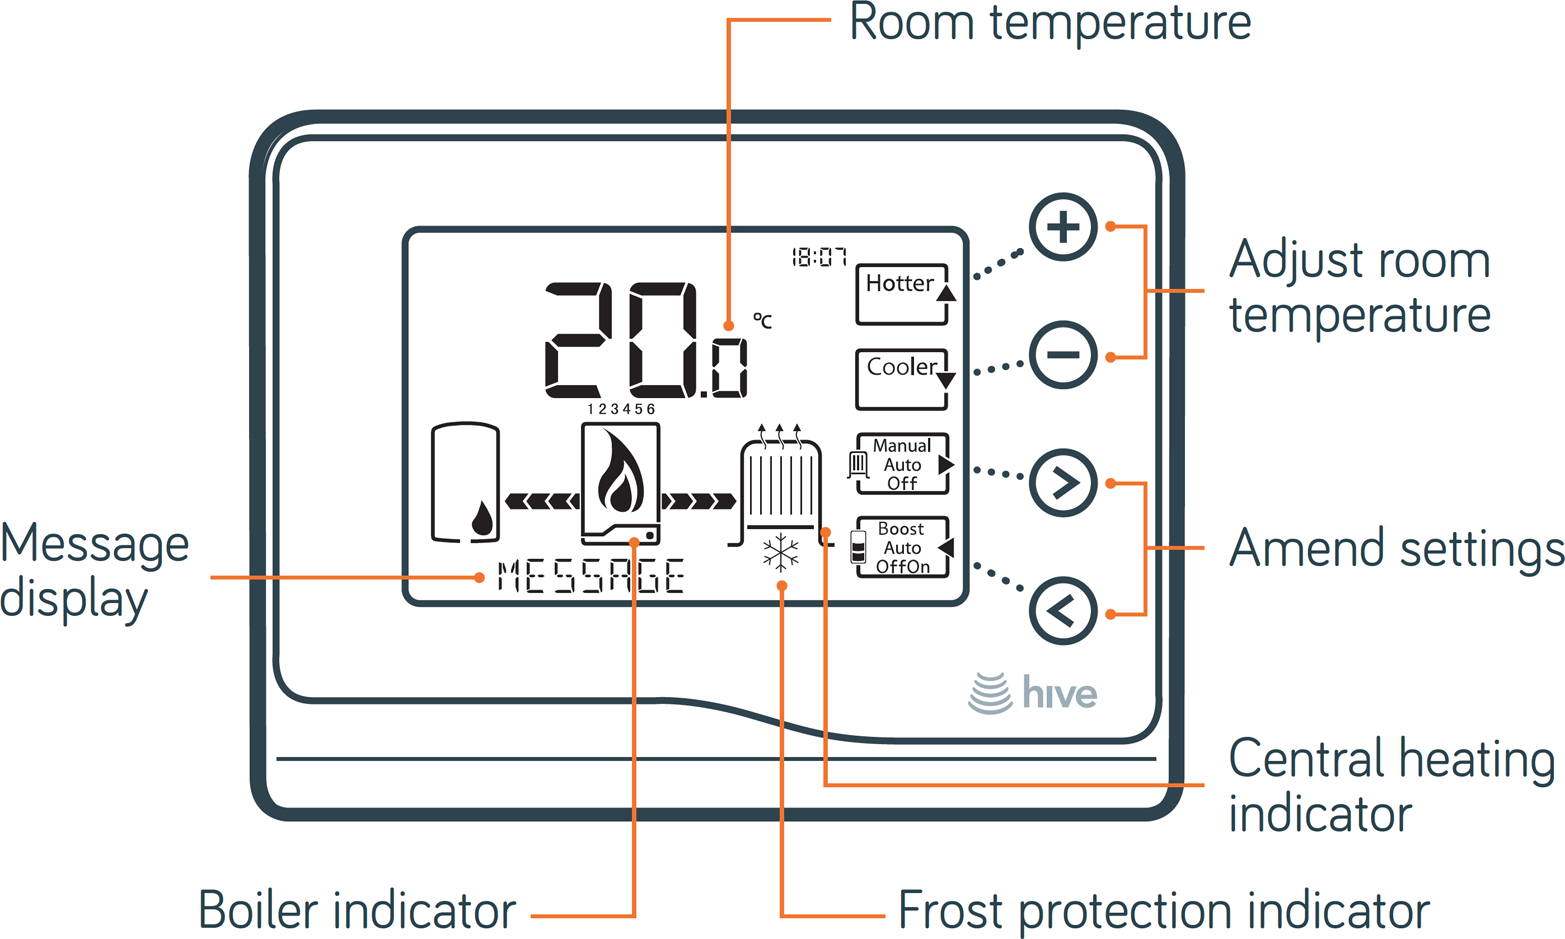 Design for a thermostat LCD display combining fixed segments and a character set; the message display is dynamic, but all the graphical elements need to be designed into the screen prior to manufacturing—there is no option to change them later (image: British Gas).